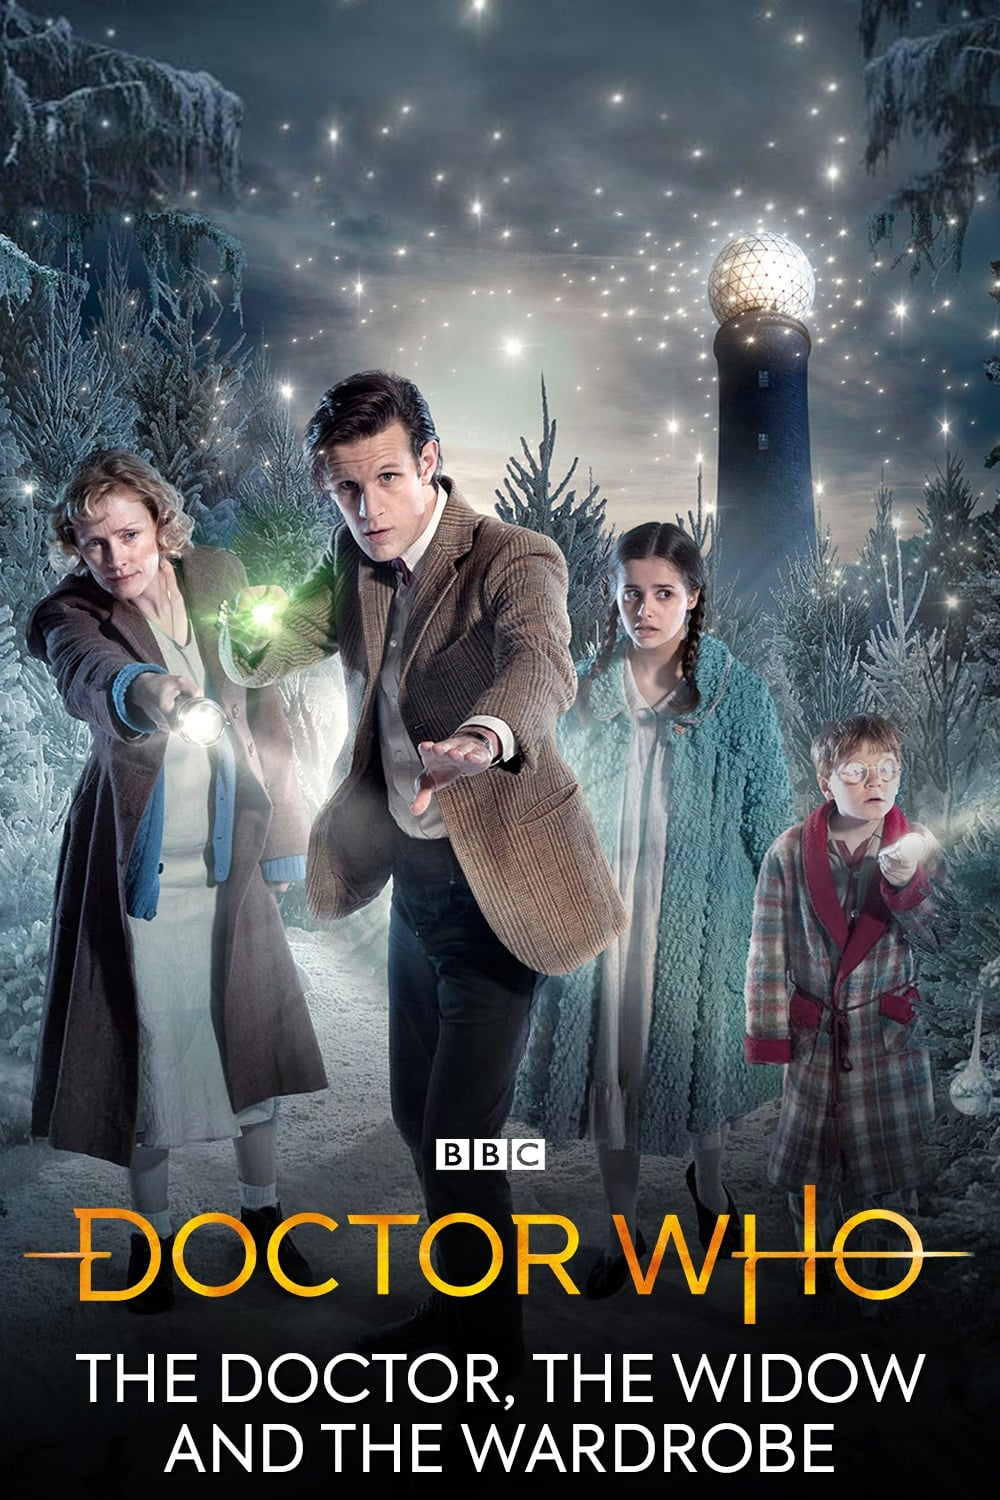 Doctor Who: The Doctor, the Widow and the Wardrobe (2011)